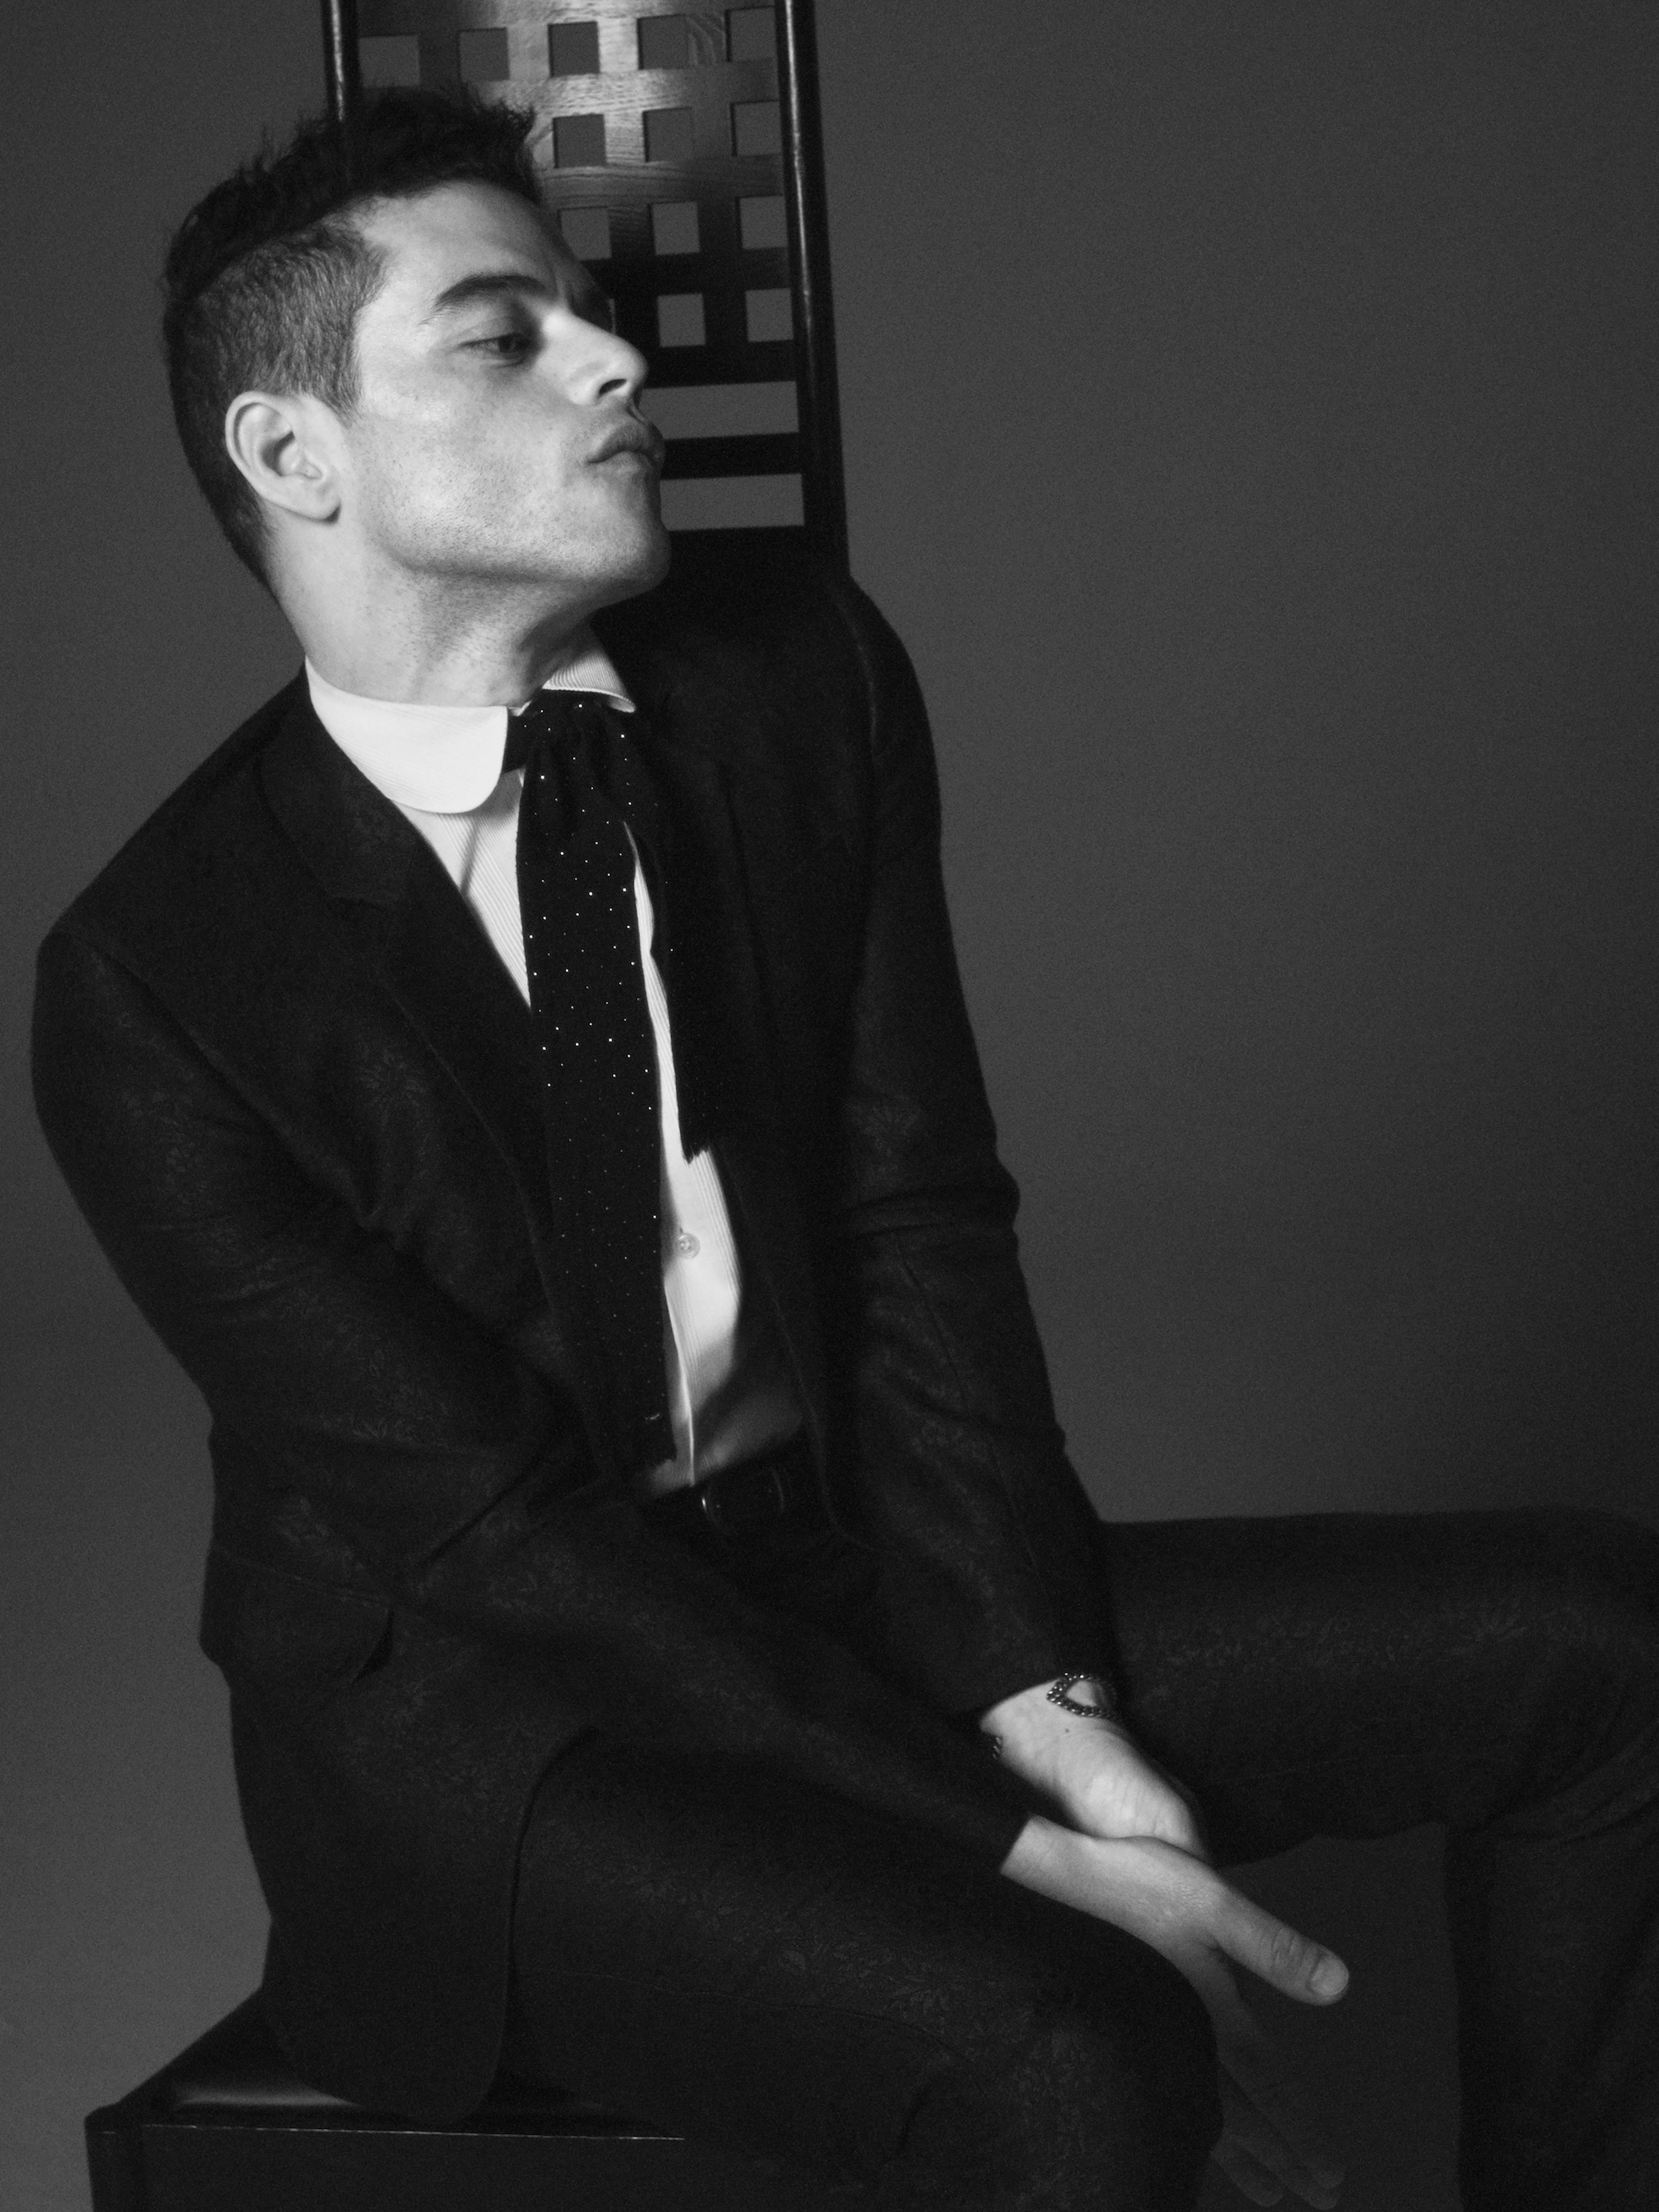 Rami Malek has been announced as the new face of Saint Laurent's menswear campaign jacket